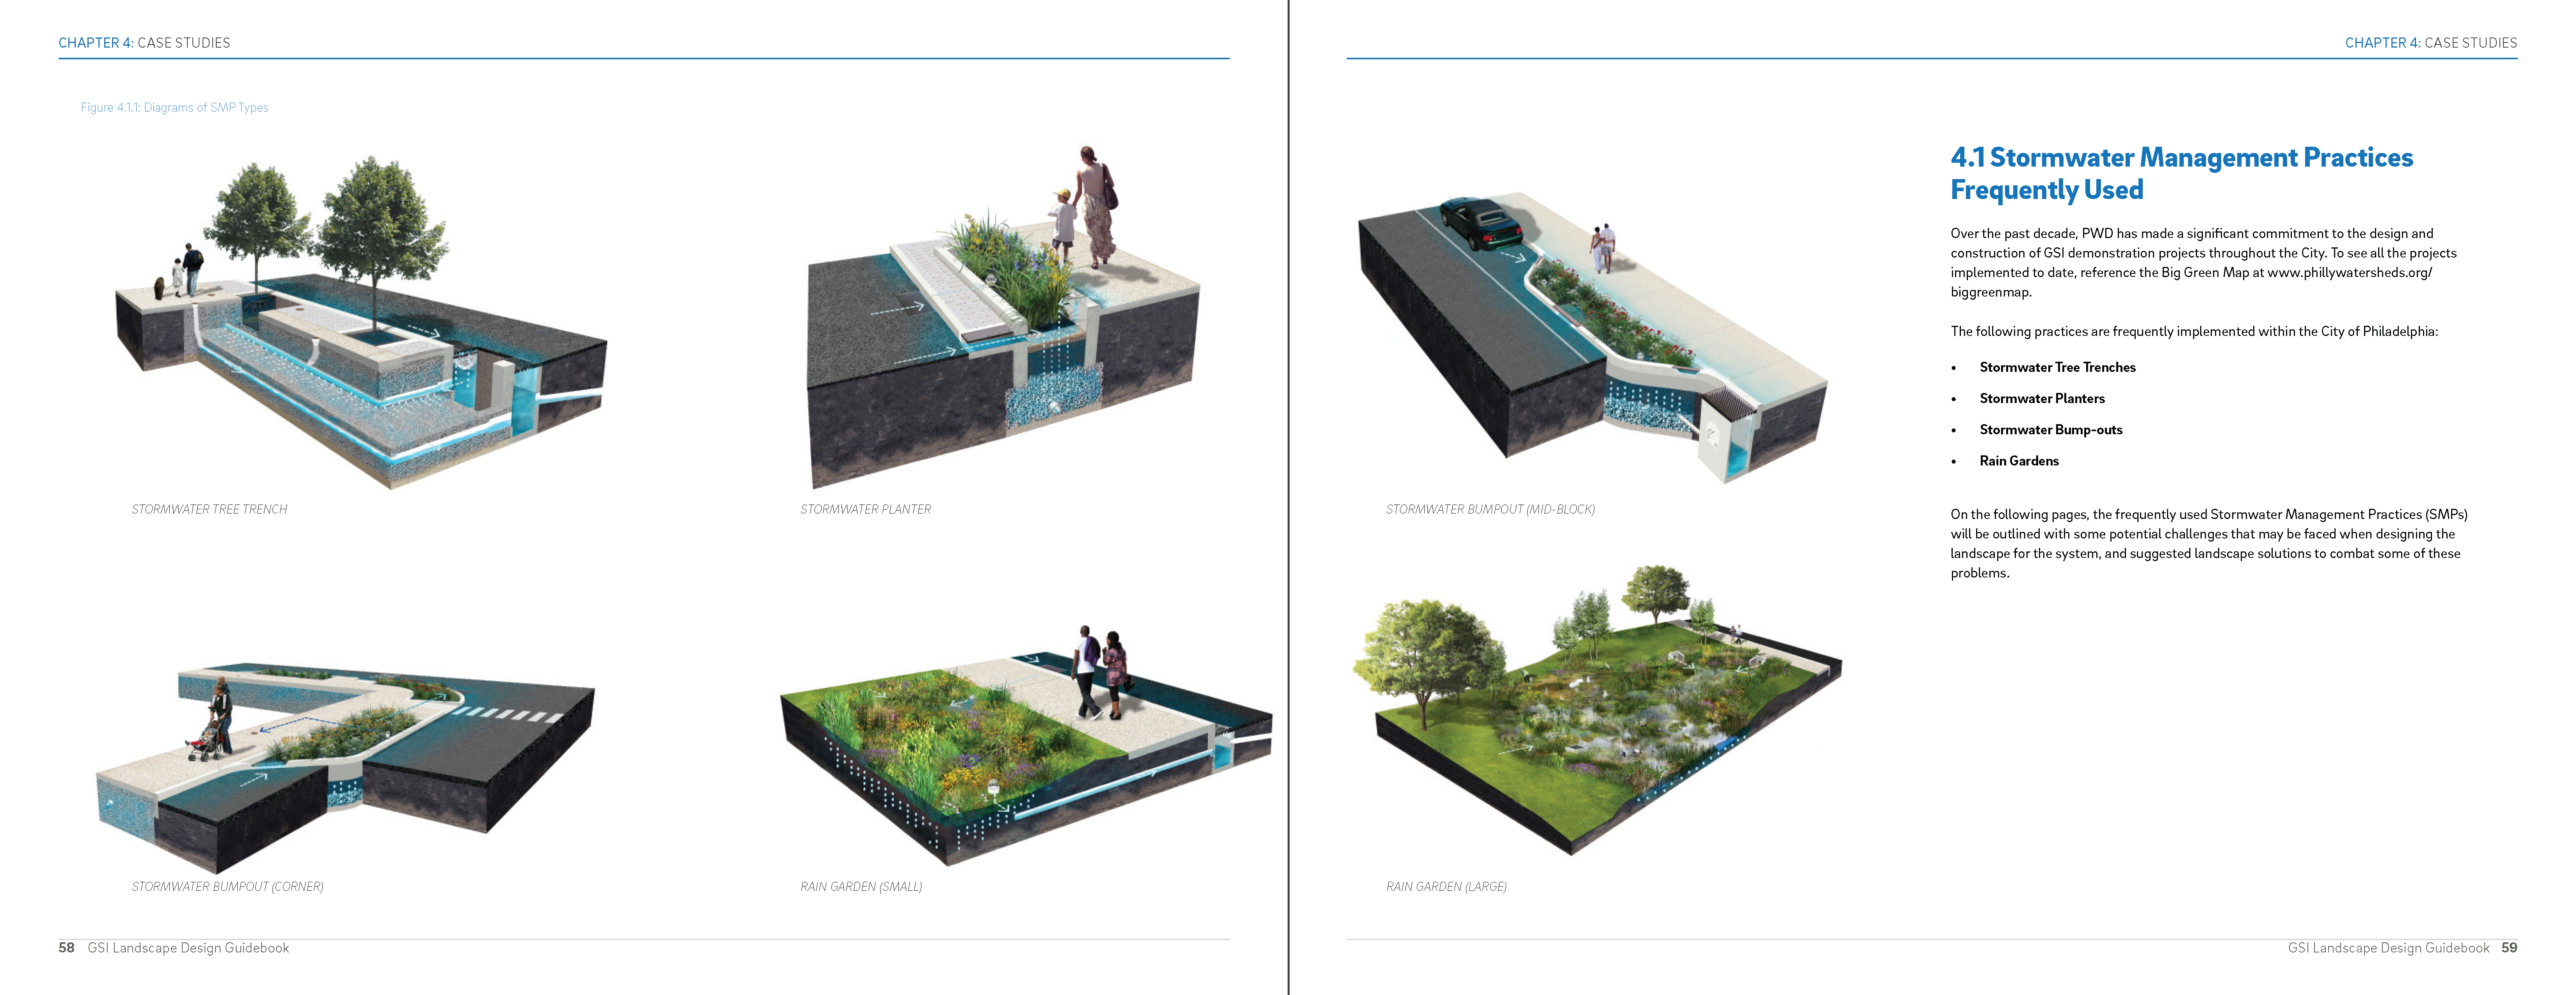 Philadelphia's Green Stormwater Infrastructure Landscape ... on rain garden design for homeowners, rain garden design ideas, rain garden design software, native garden design diagrams, rain garden design templates, rain garden design calculations, rain garden planting design for maryland, landscaping diagrams, rain barrel diagram, sustainable architecture design diagrams, rain garden design sketch, rain architecture diagrams, rain water retention plans, catch rain diagrams, rain shadow, stormwater management diagrams,